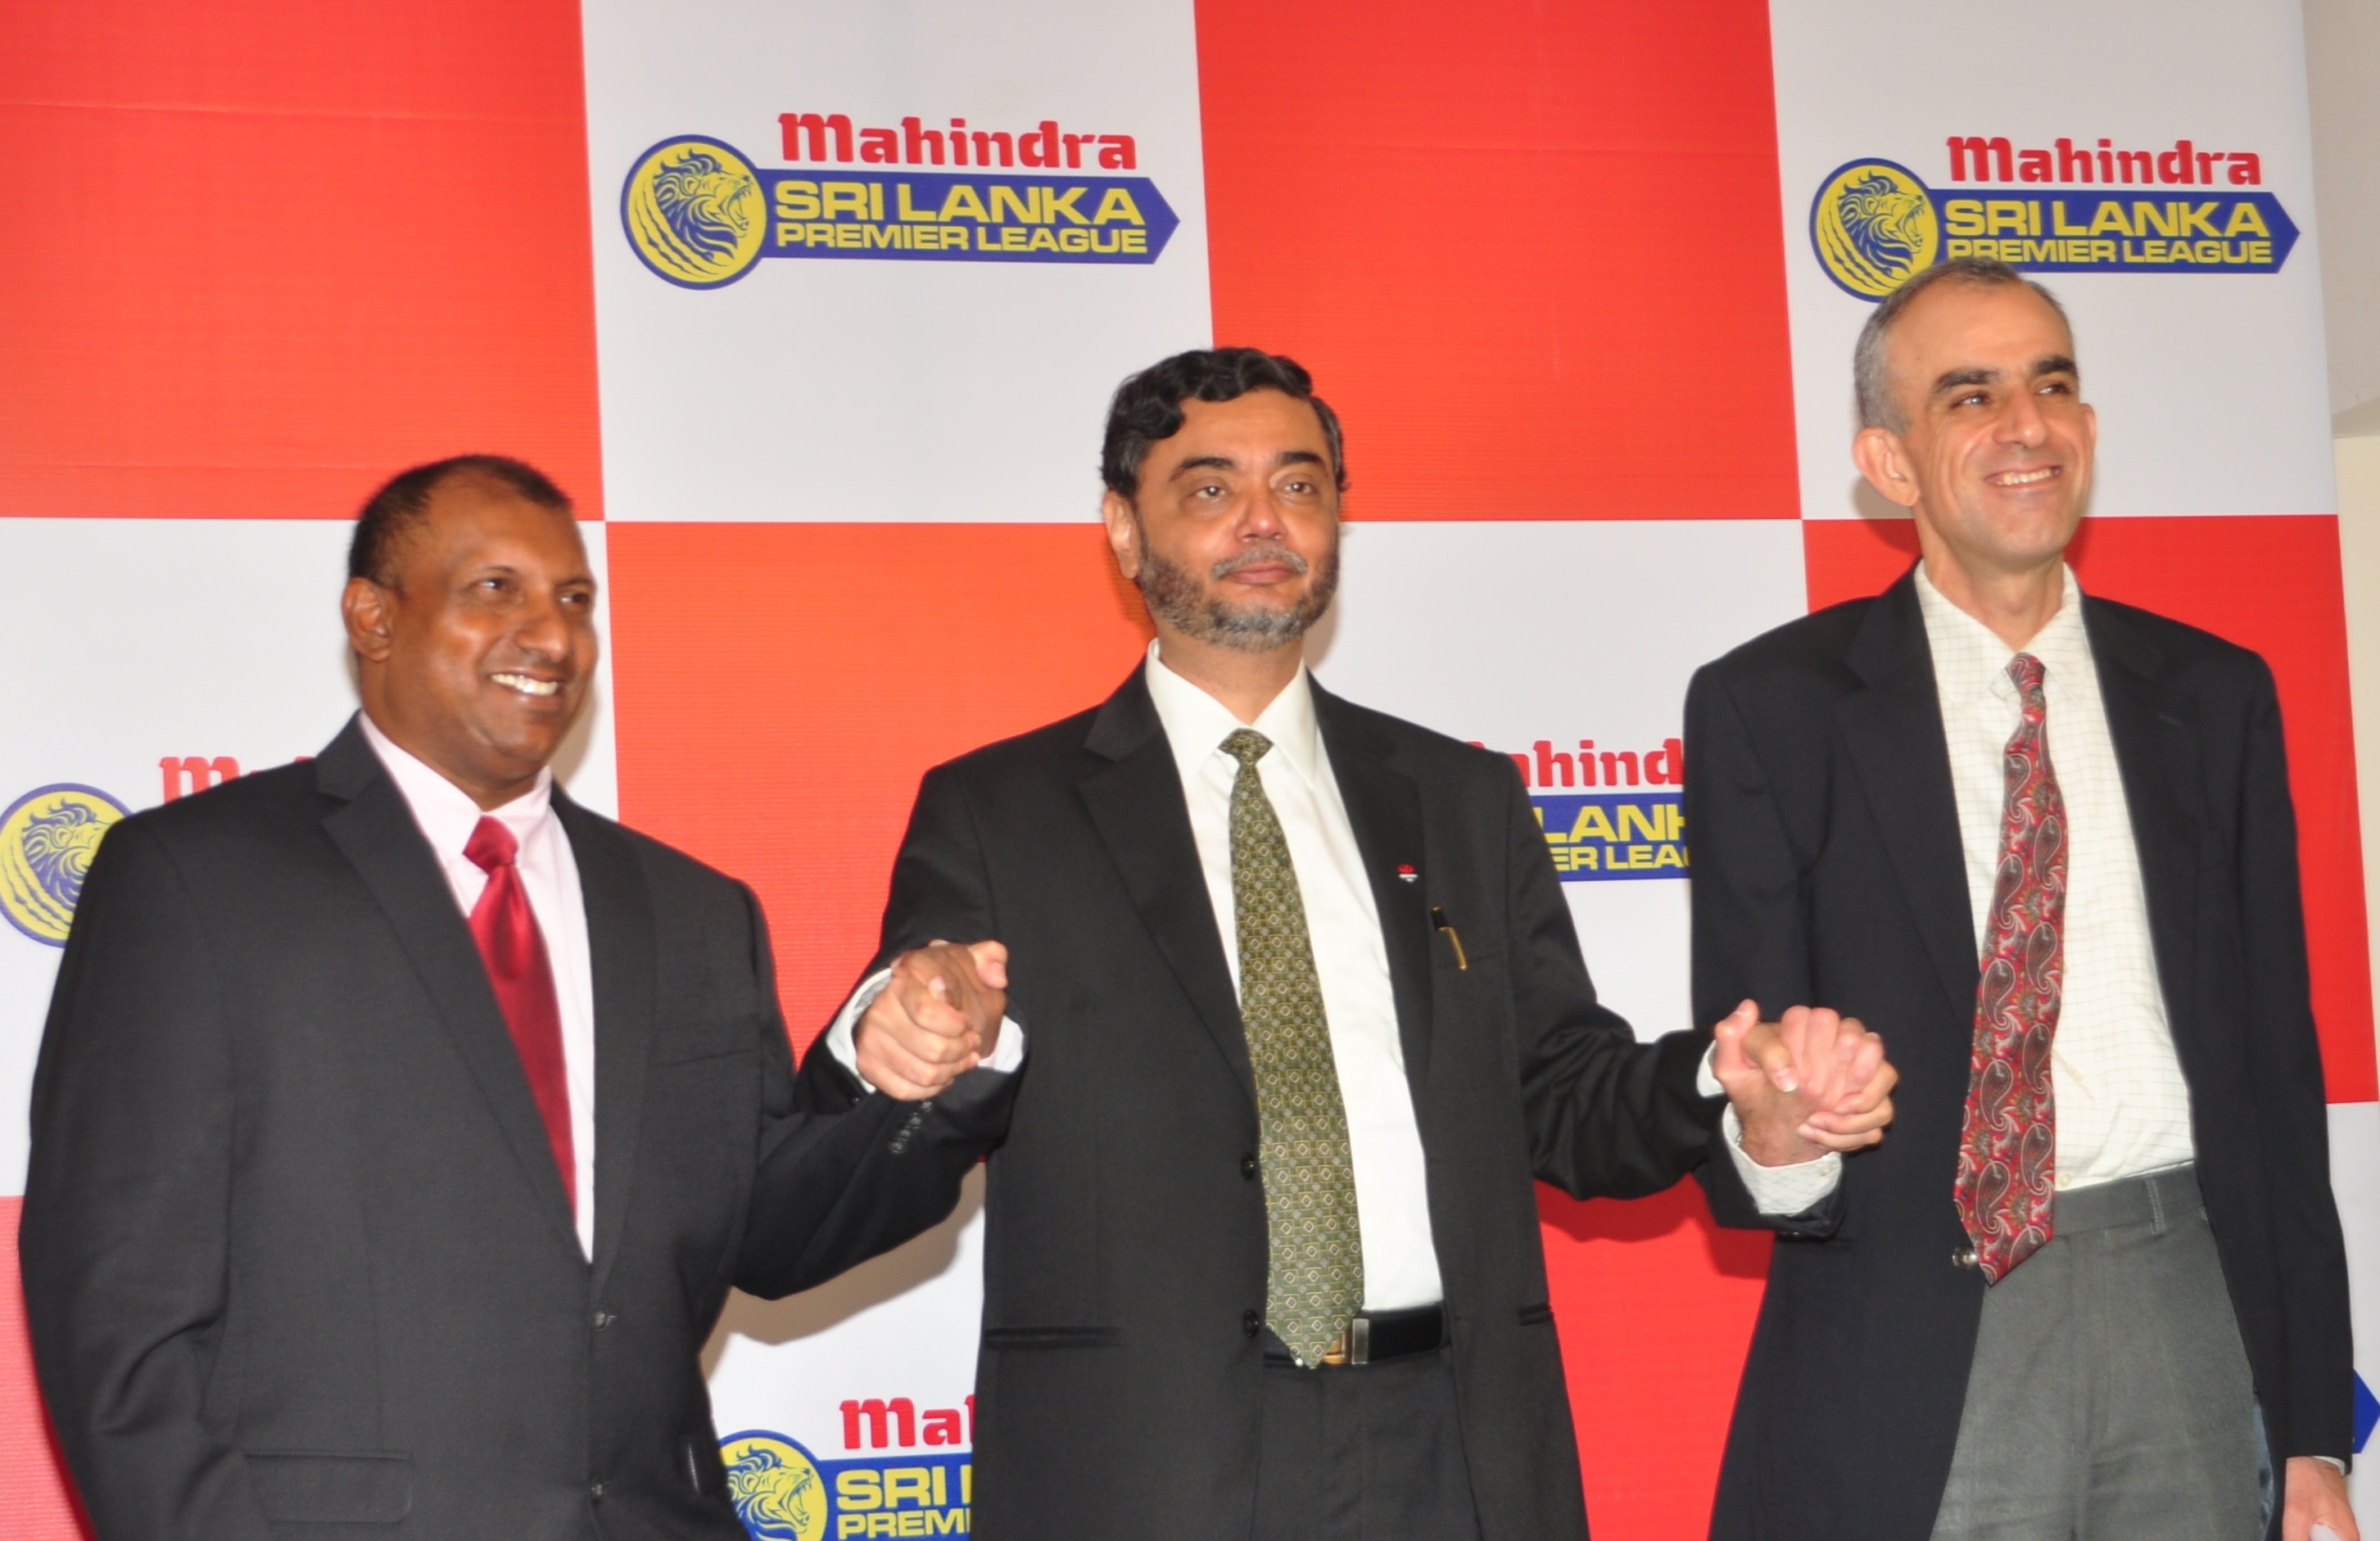 Mahindra grabs title sponsorship rights for Sri Lankan Premier League